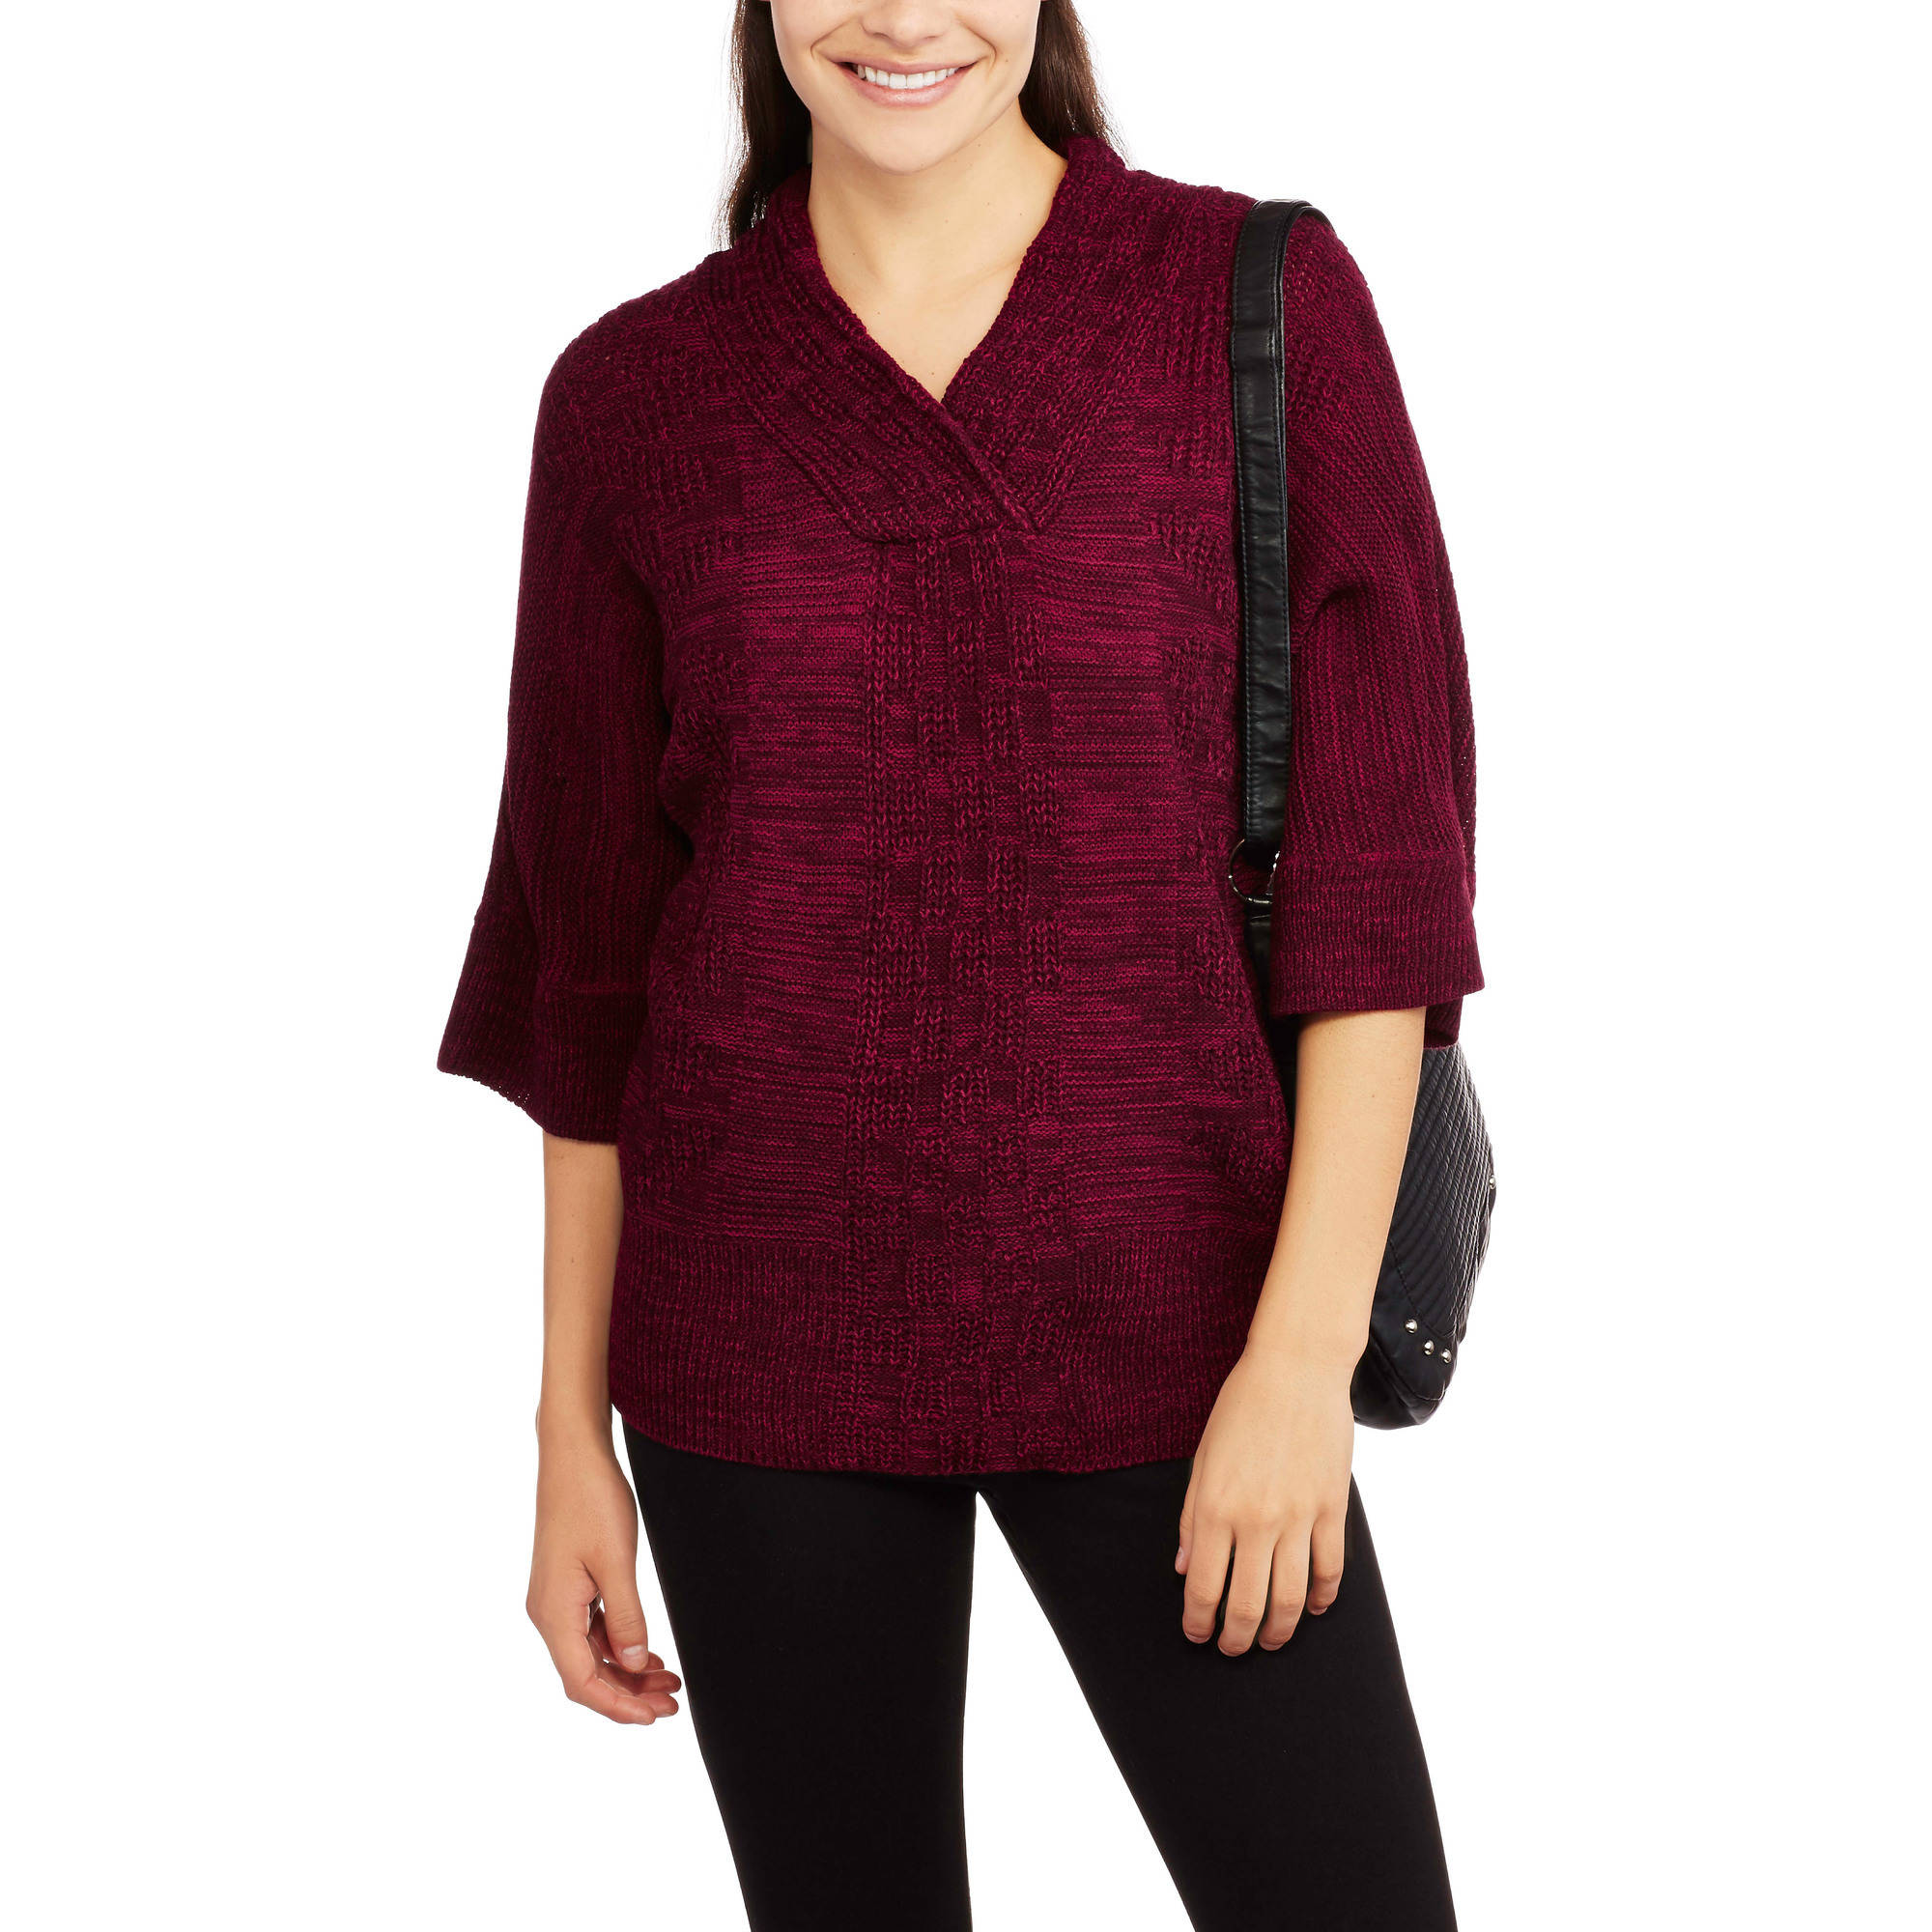 Allison Brittney Women's Dolman Shawl Collar Sweater